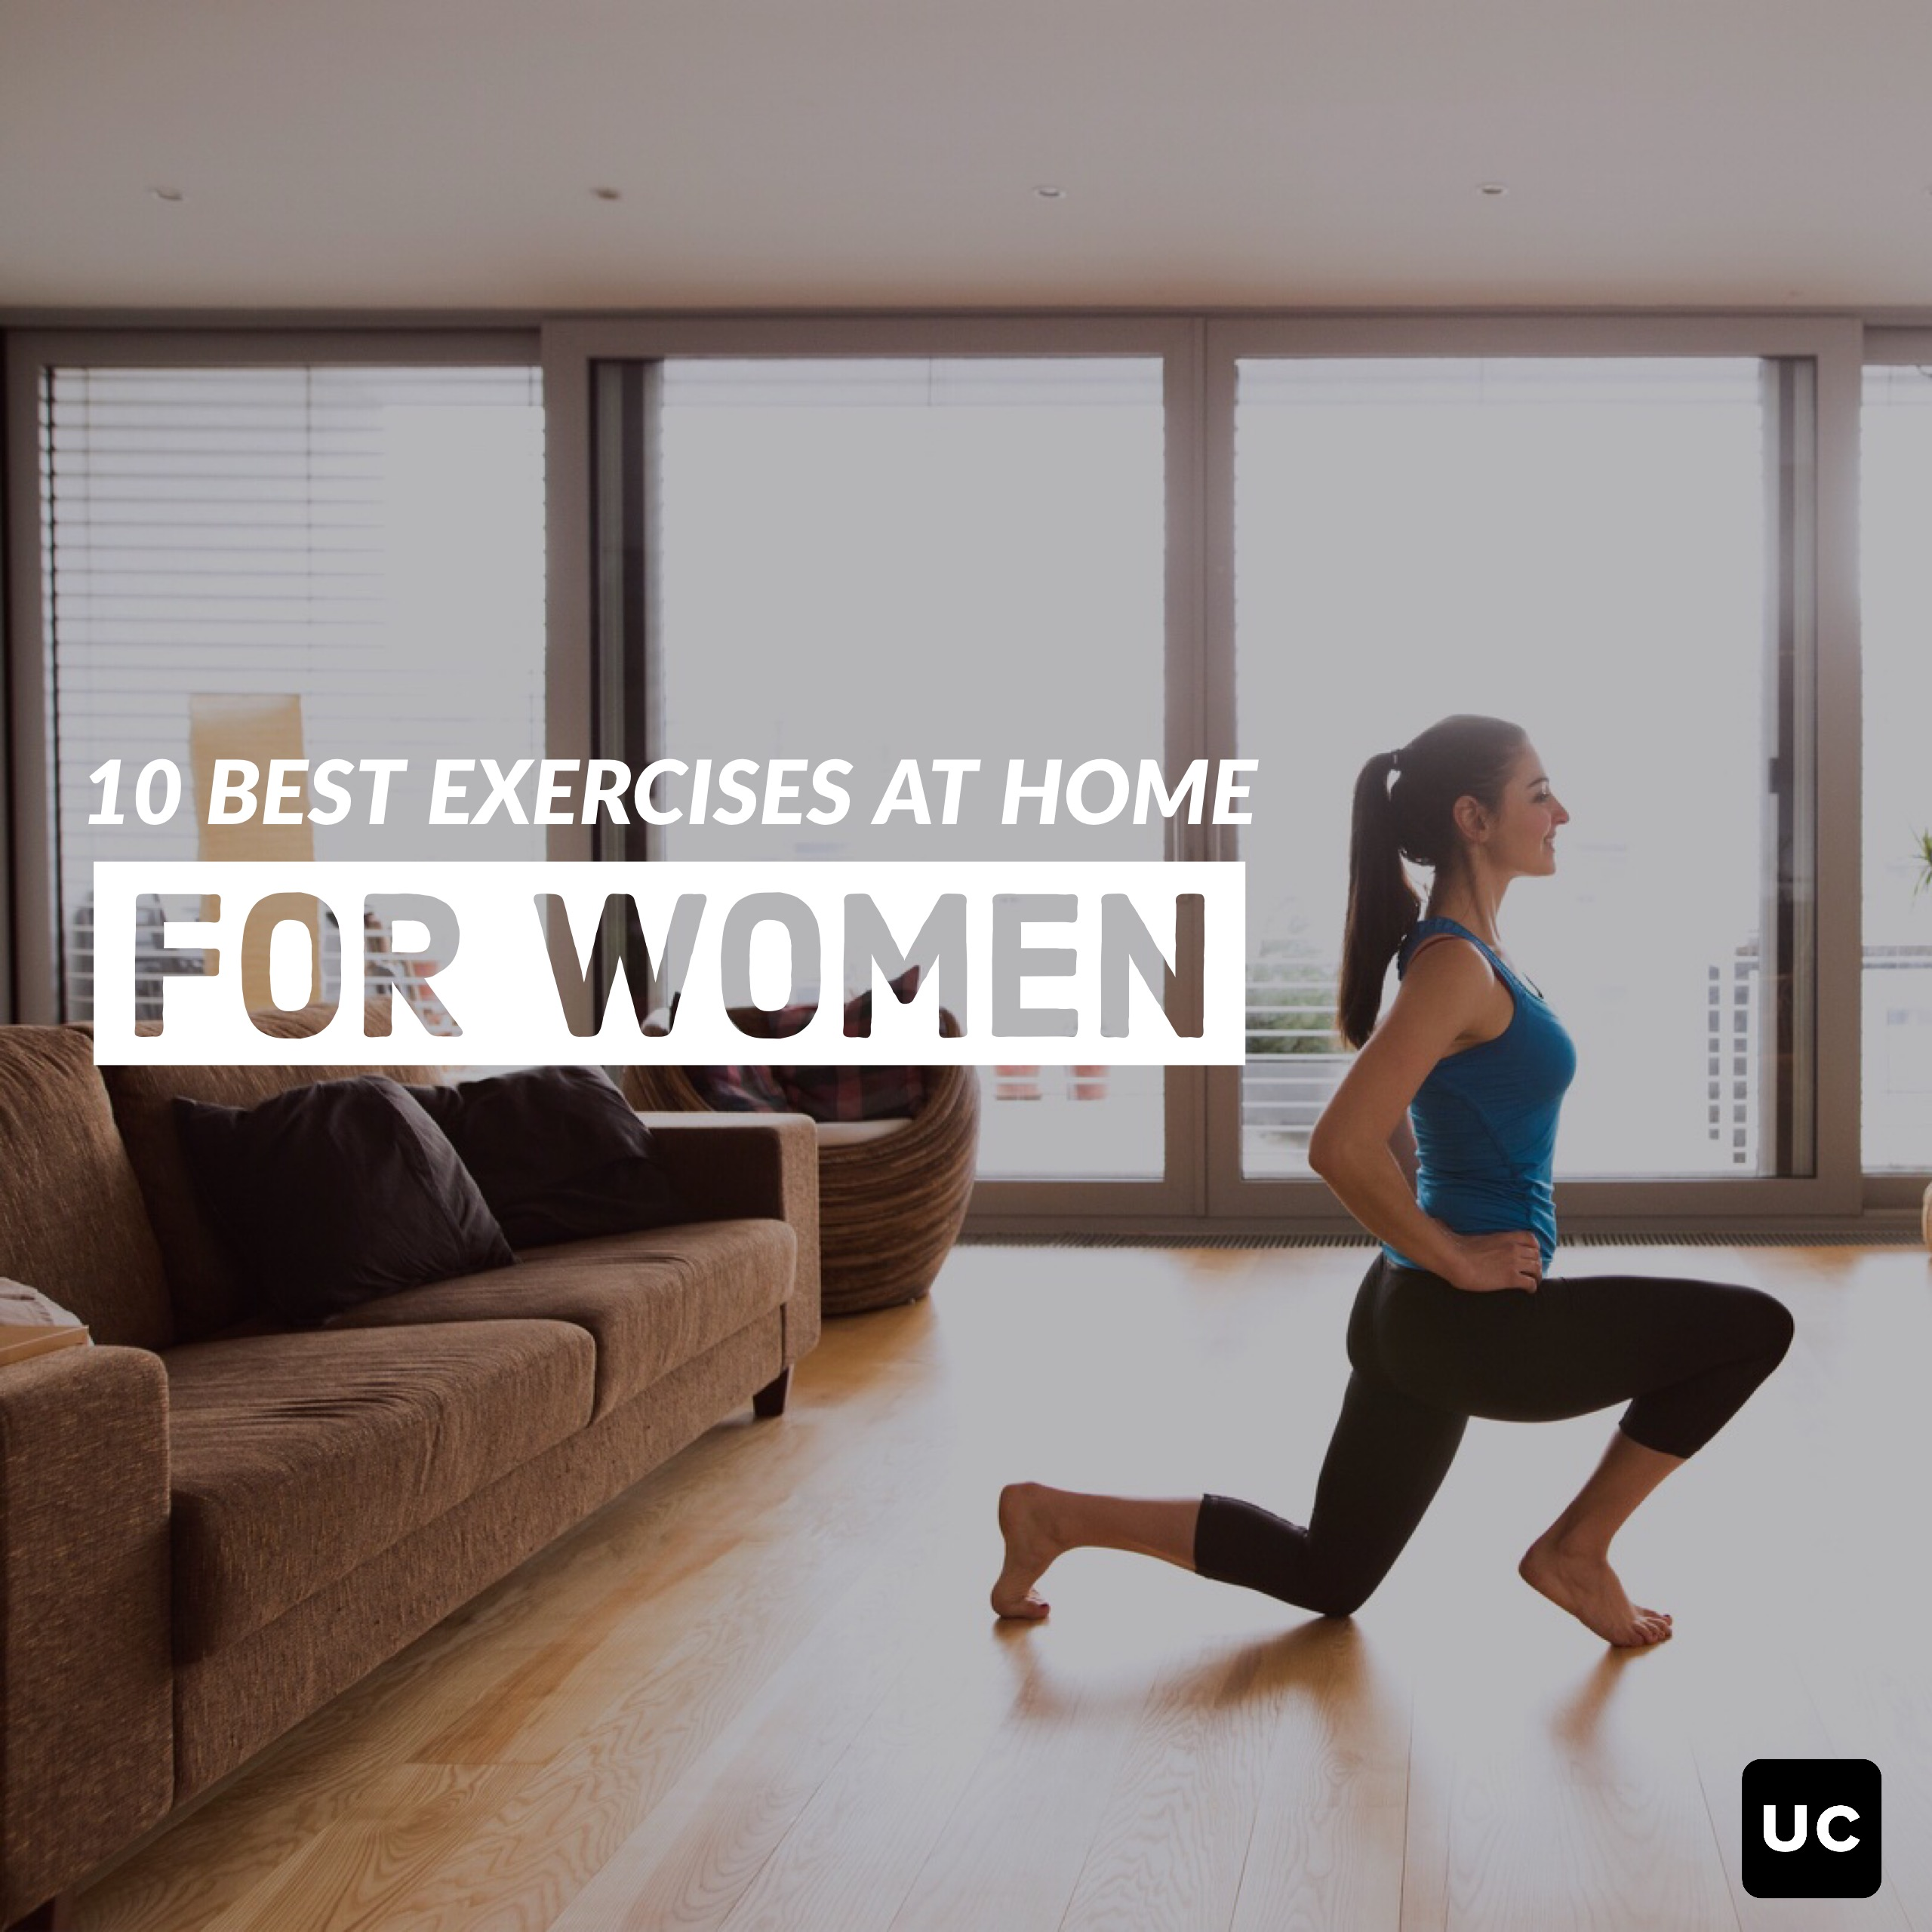 10 exercises at home